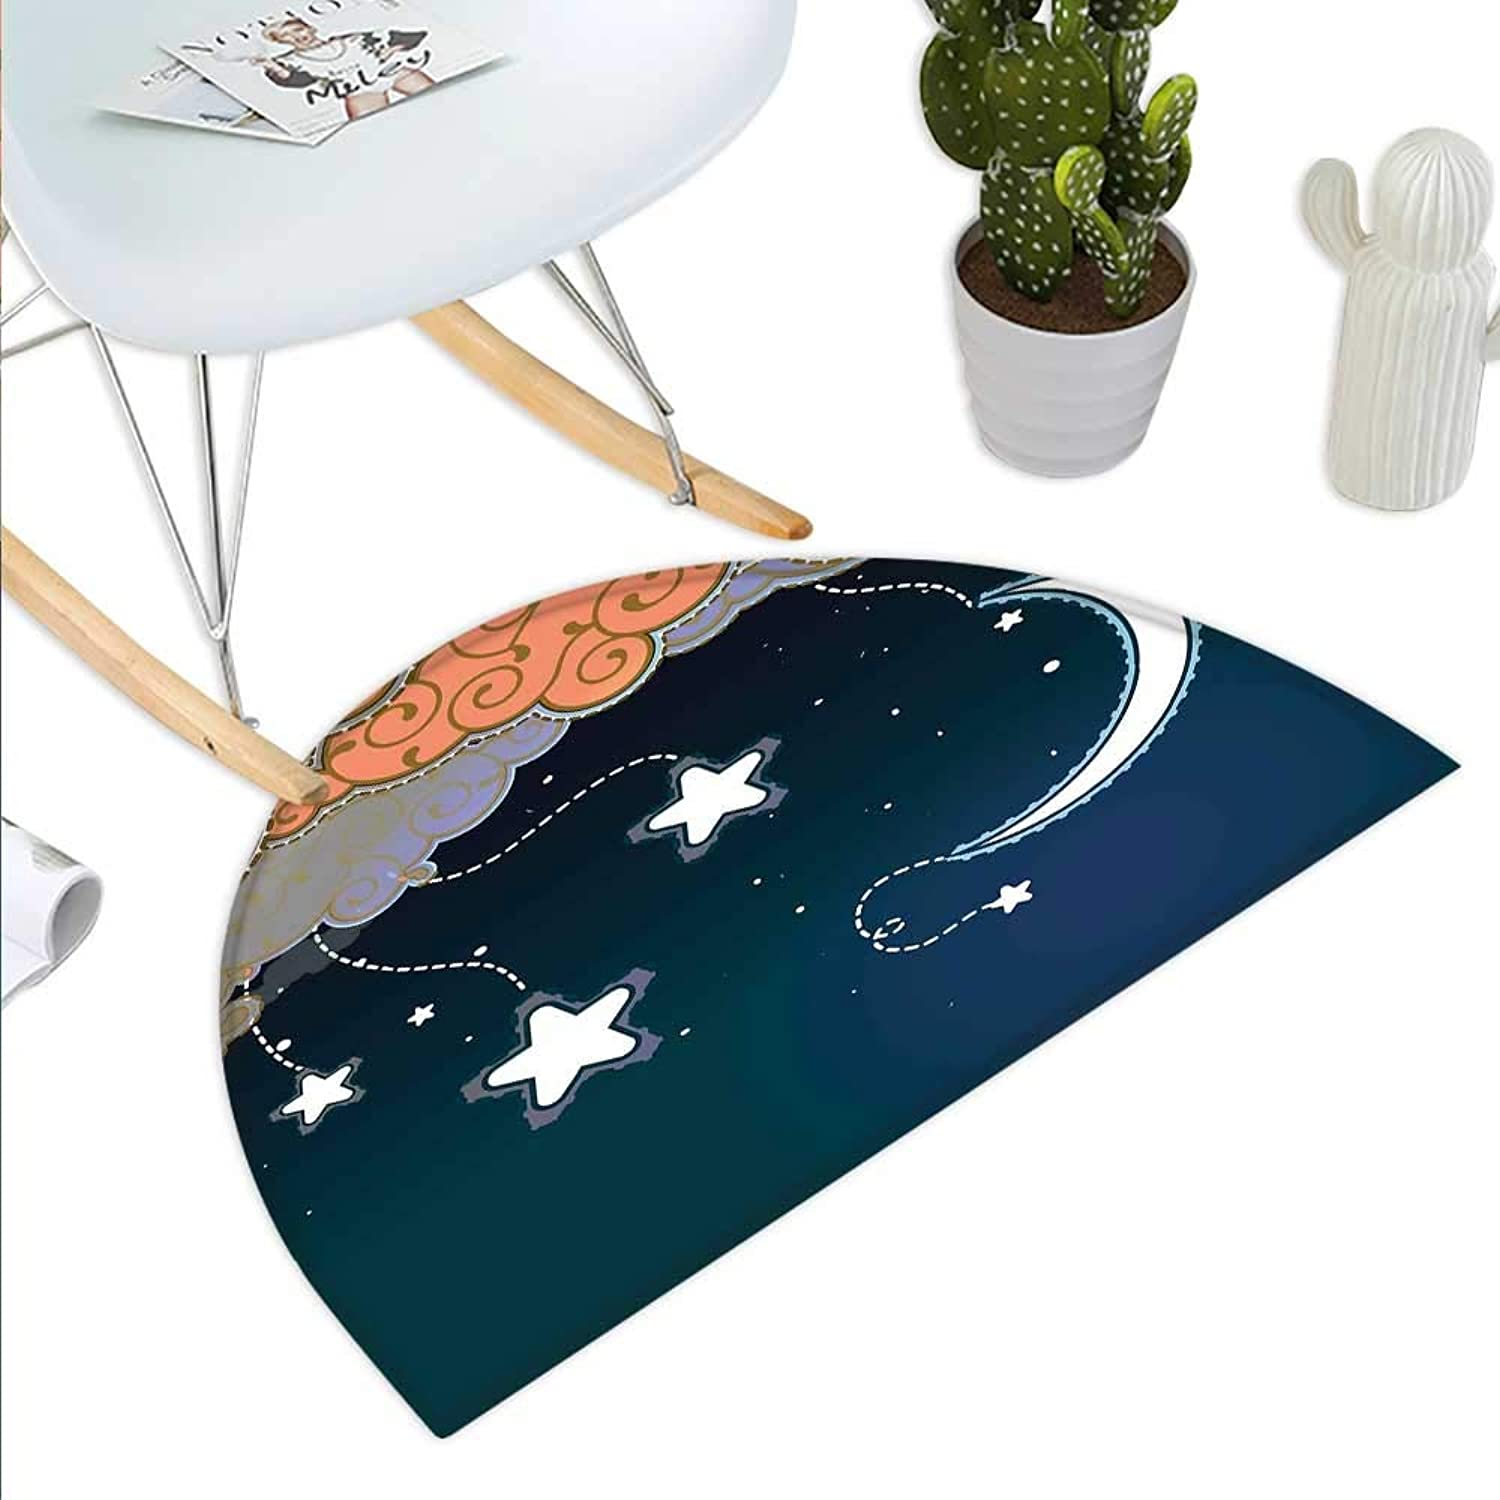 Kids Semicircle Doormat Cartoon Style Night Sky with Swirled Clouds Stars and Moon Dotted Lines Halfmoon doormats H 43.3  xD 64.9  Dark bluee White Salmon